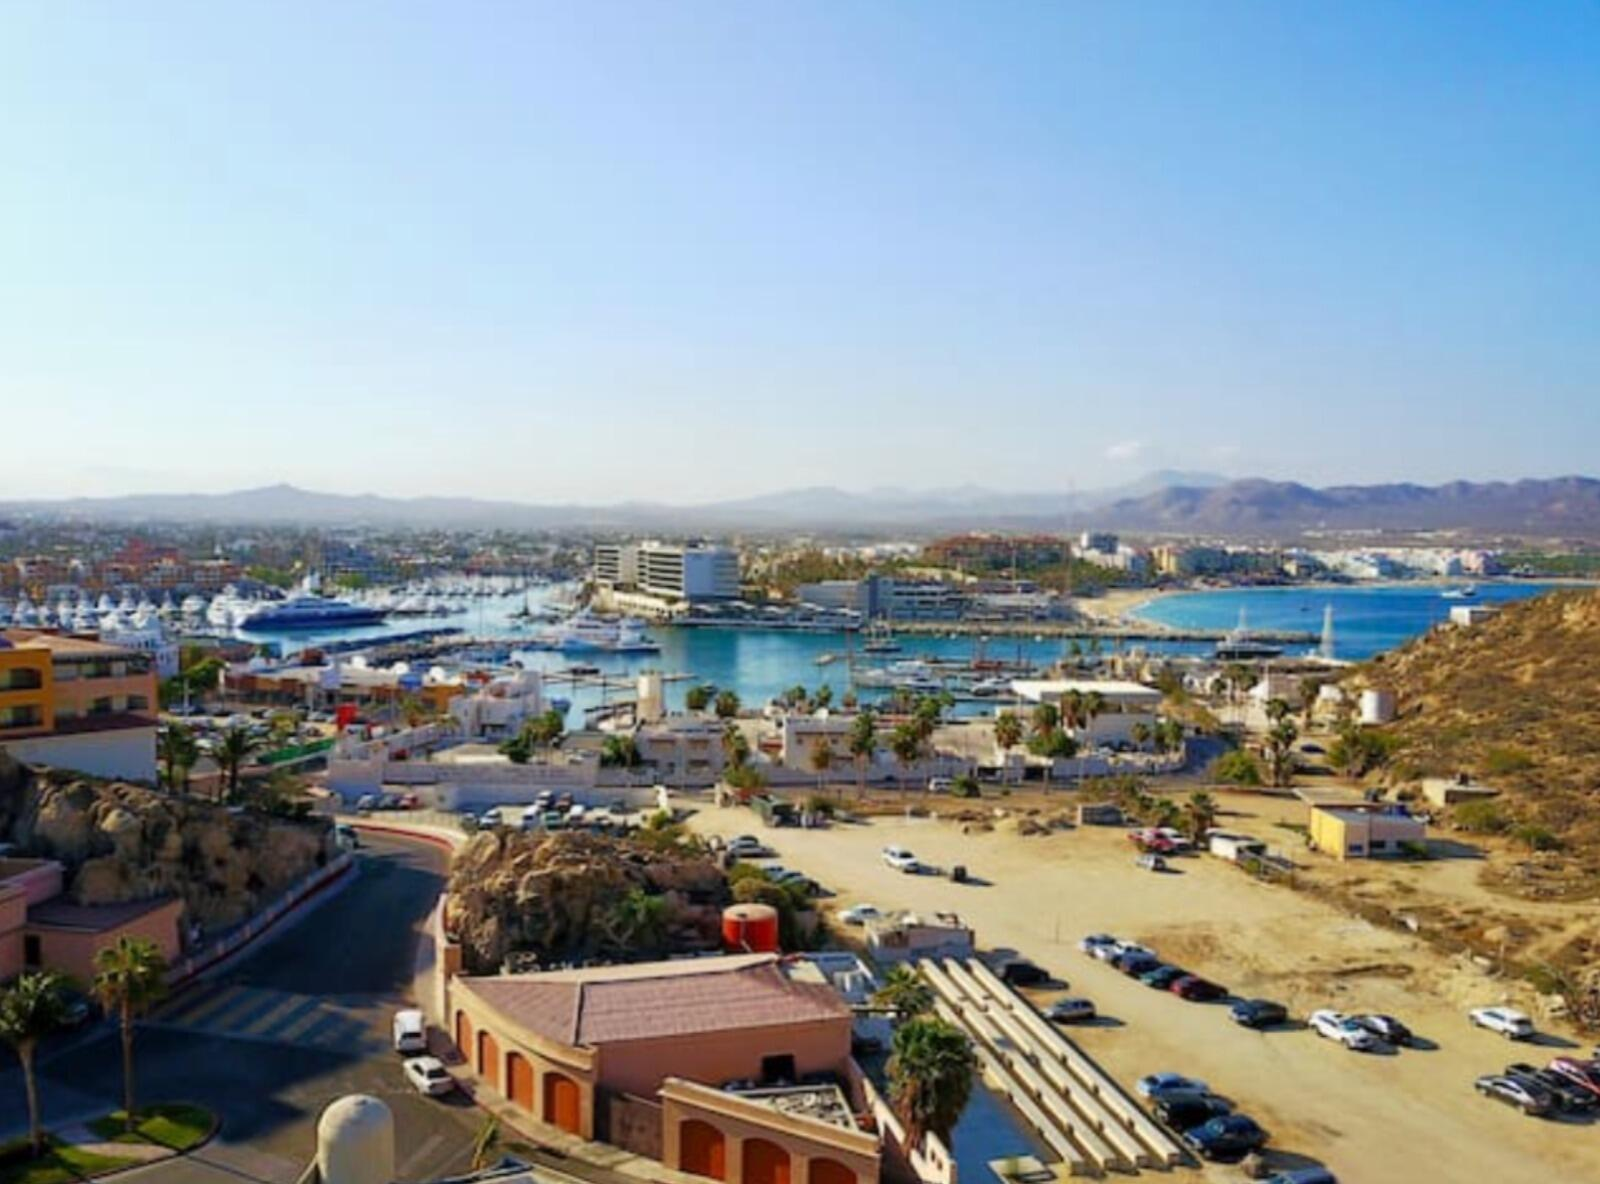 Superbly located 2 bedroom condo, minutes from Cabo San Lucas Marina, Lands end and Lovers beach. recently renovated by local prestigious architect using a highly design for vacation rental use. The condo has robust rental history and offers incomparable convenience for owner and rental guests.